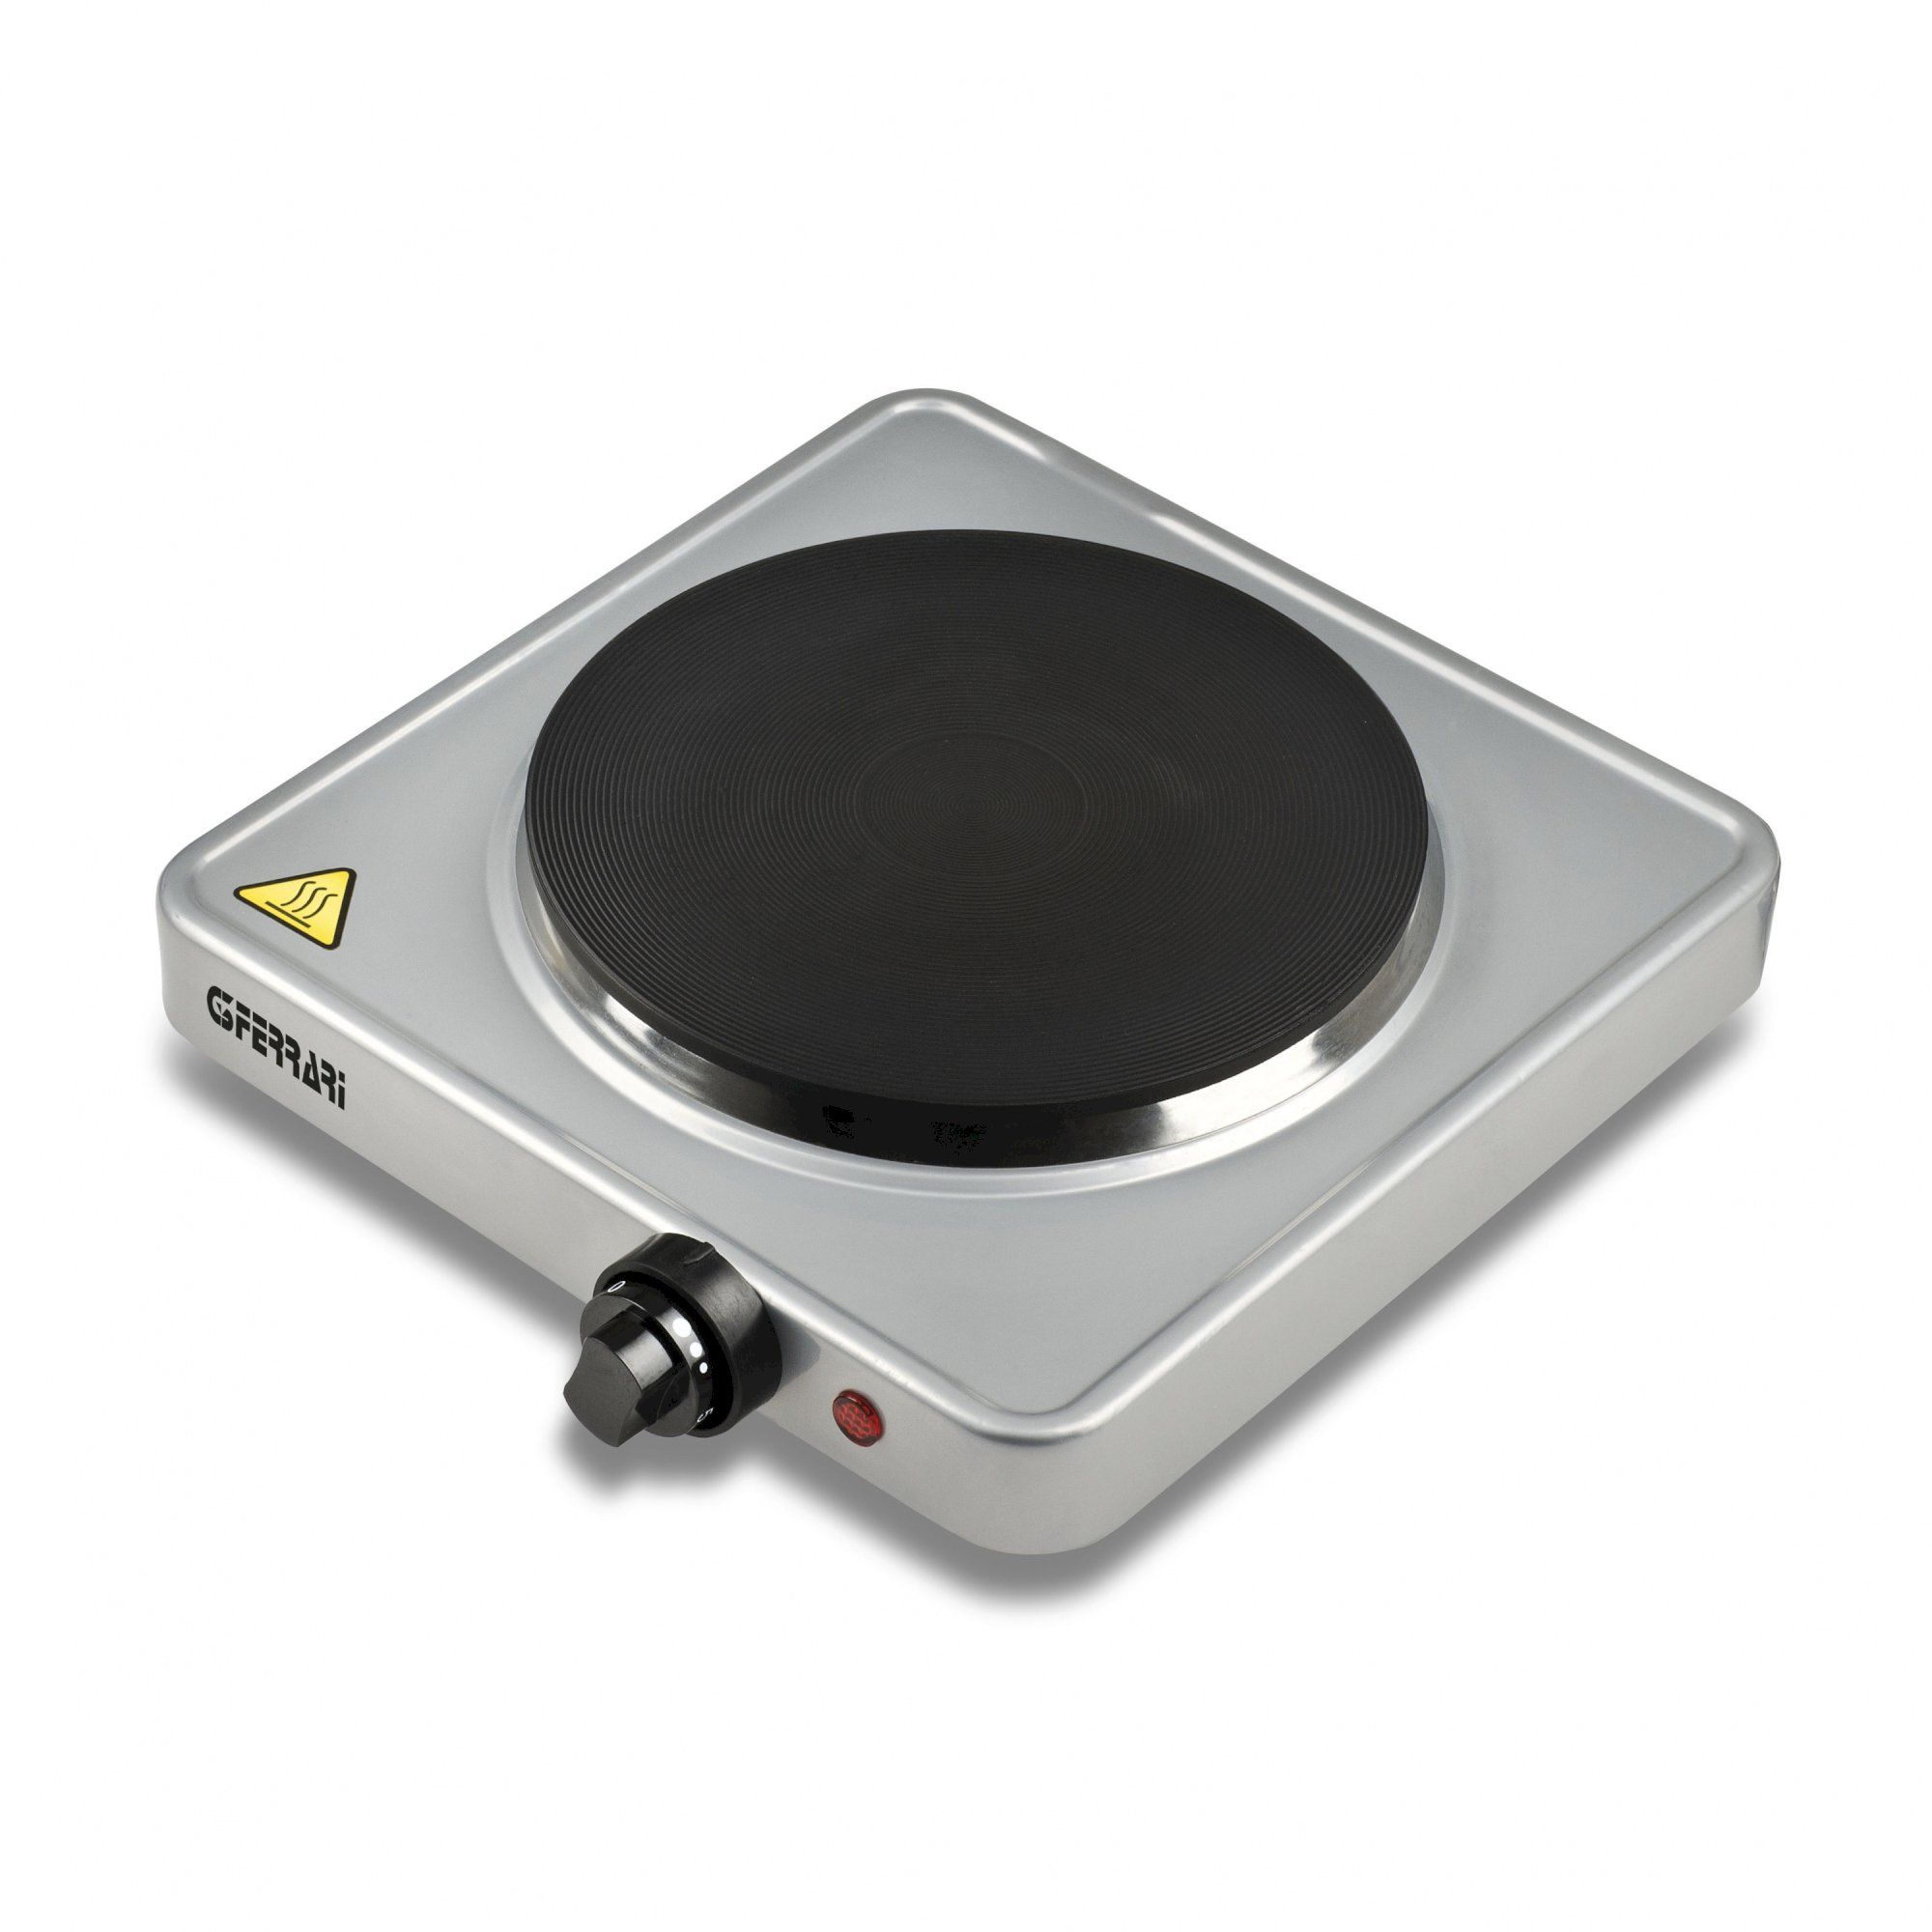 G1012100, Caldone, electric hotplate, 1500W, silver